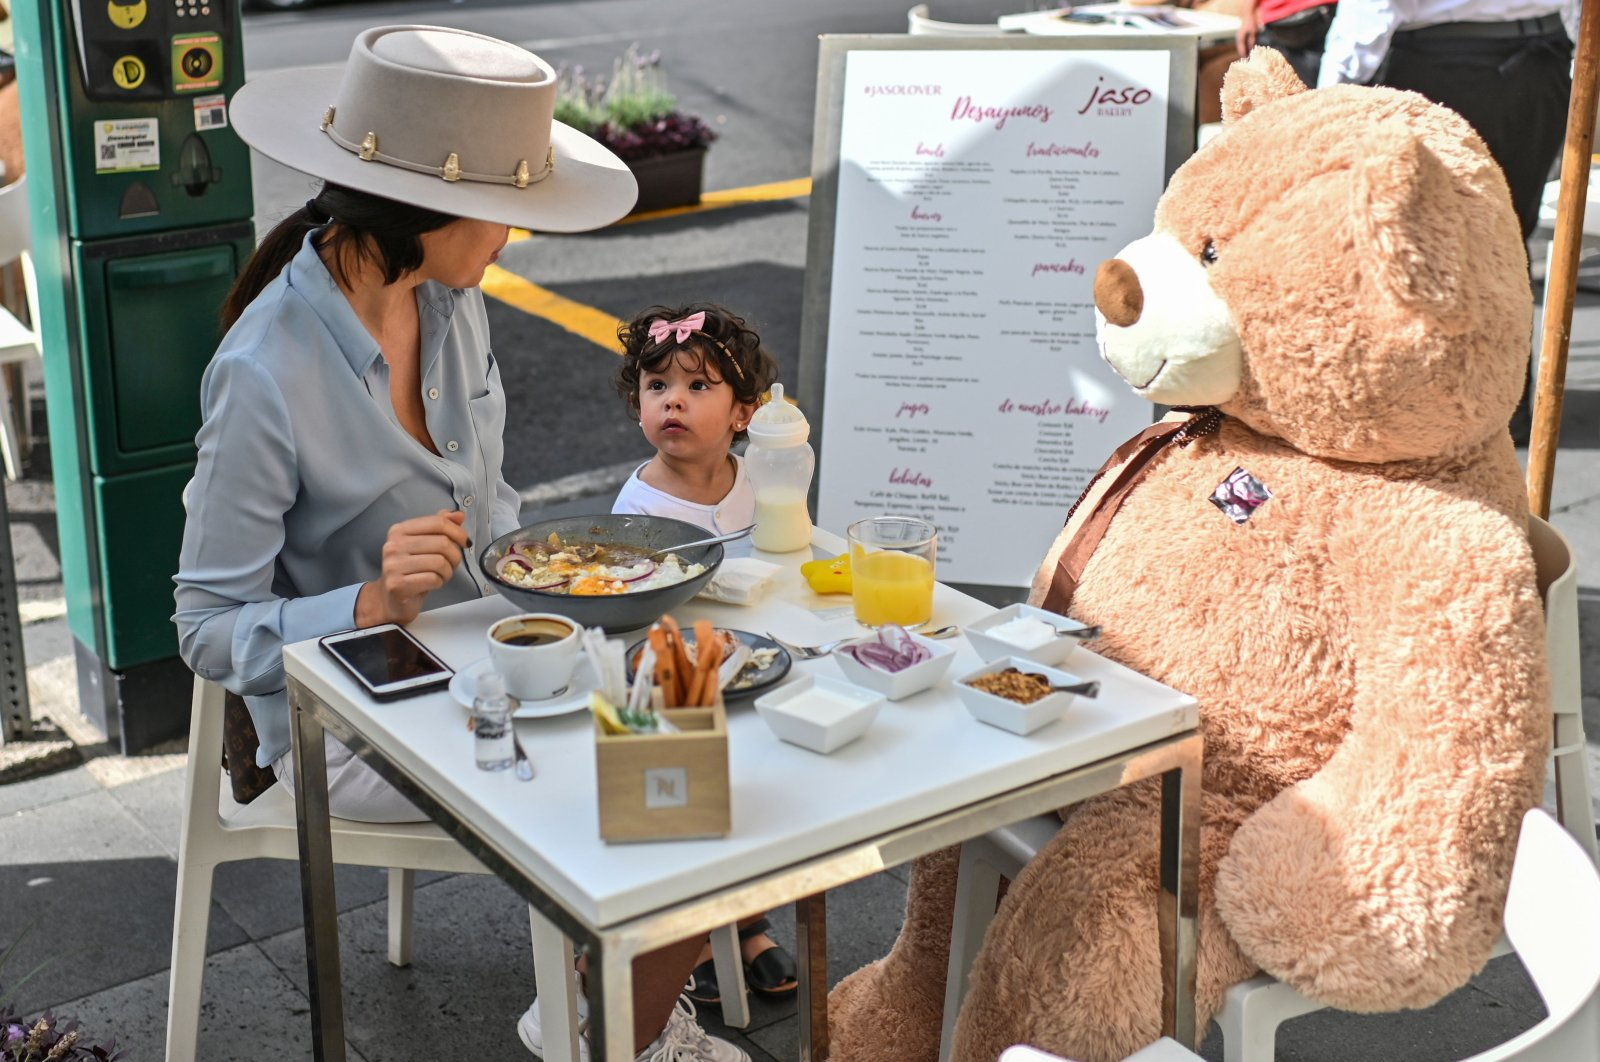 Customers sit with a teddy bear used to maintain a social distance during the coronavirus pandemic at a restaurant in Polanco neighborhood, in Mexico City, July 26, 2020. (AFP Photo)